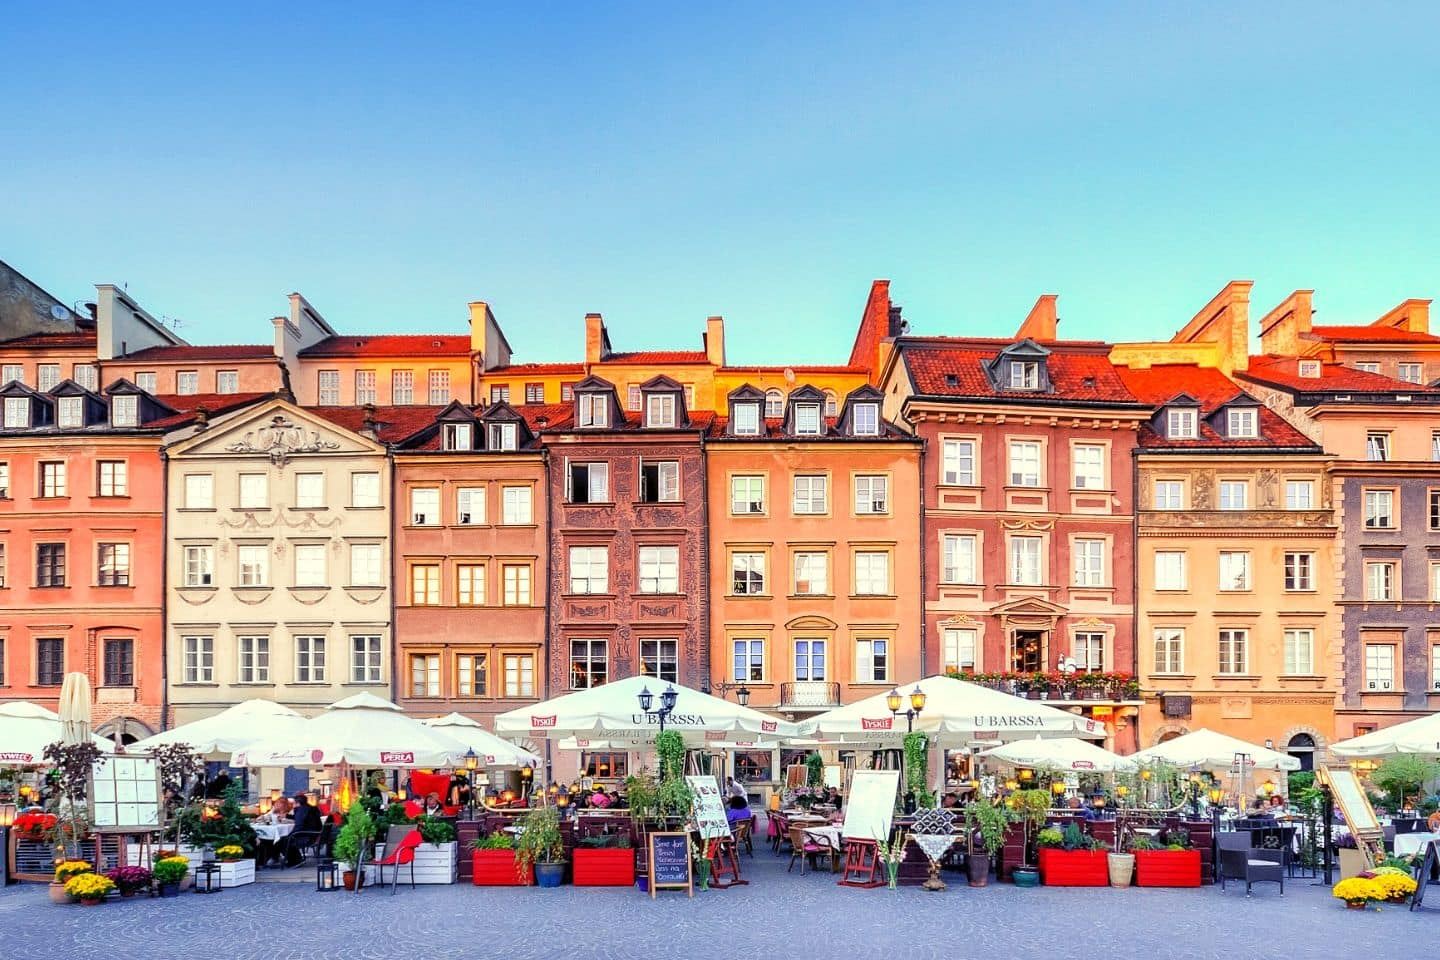 colorful buildings in warsaw's old town